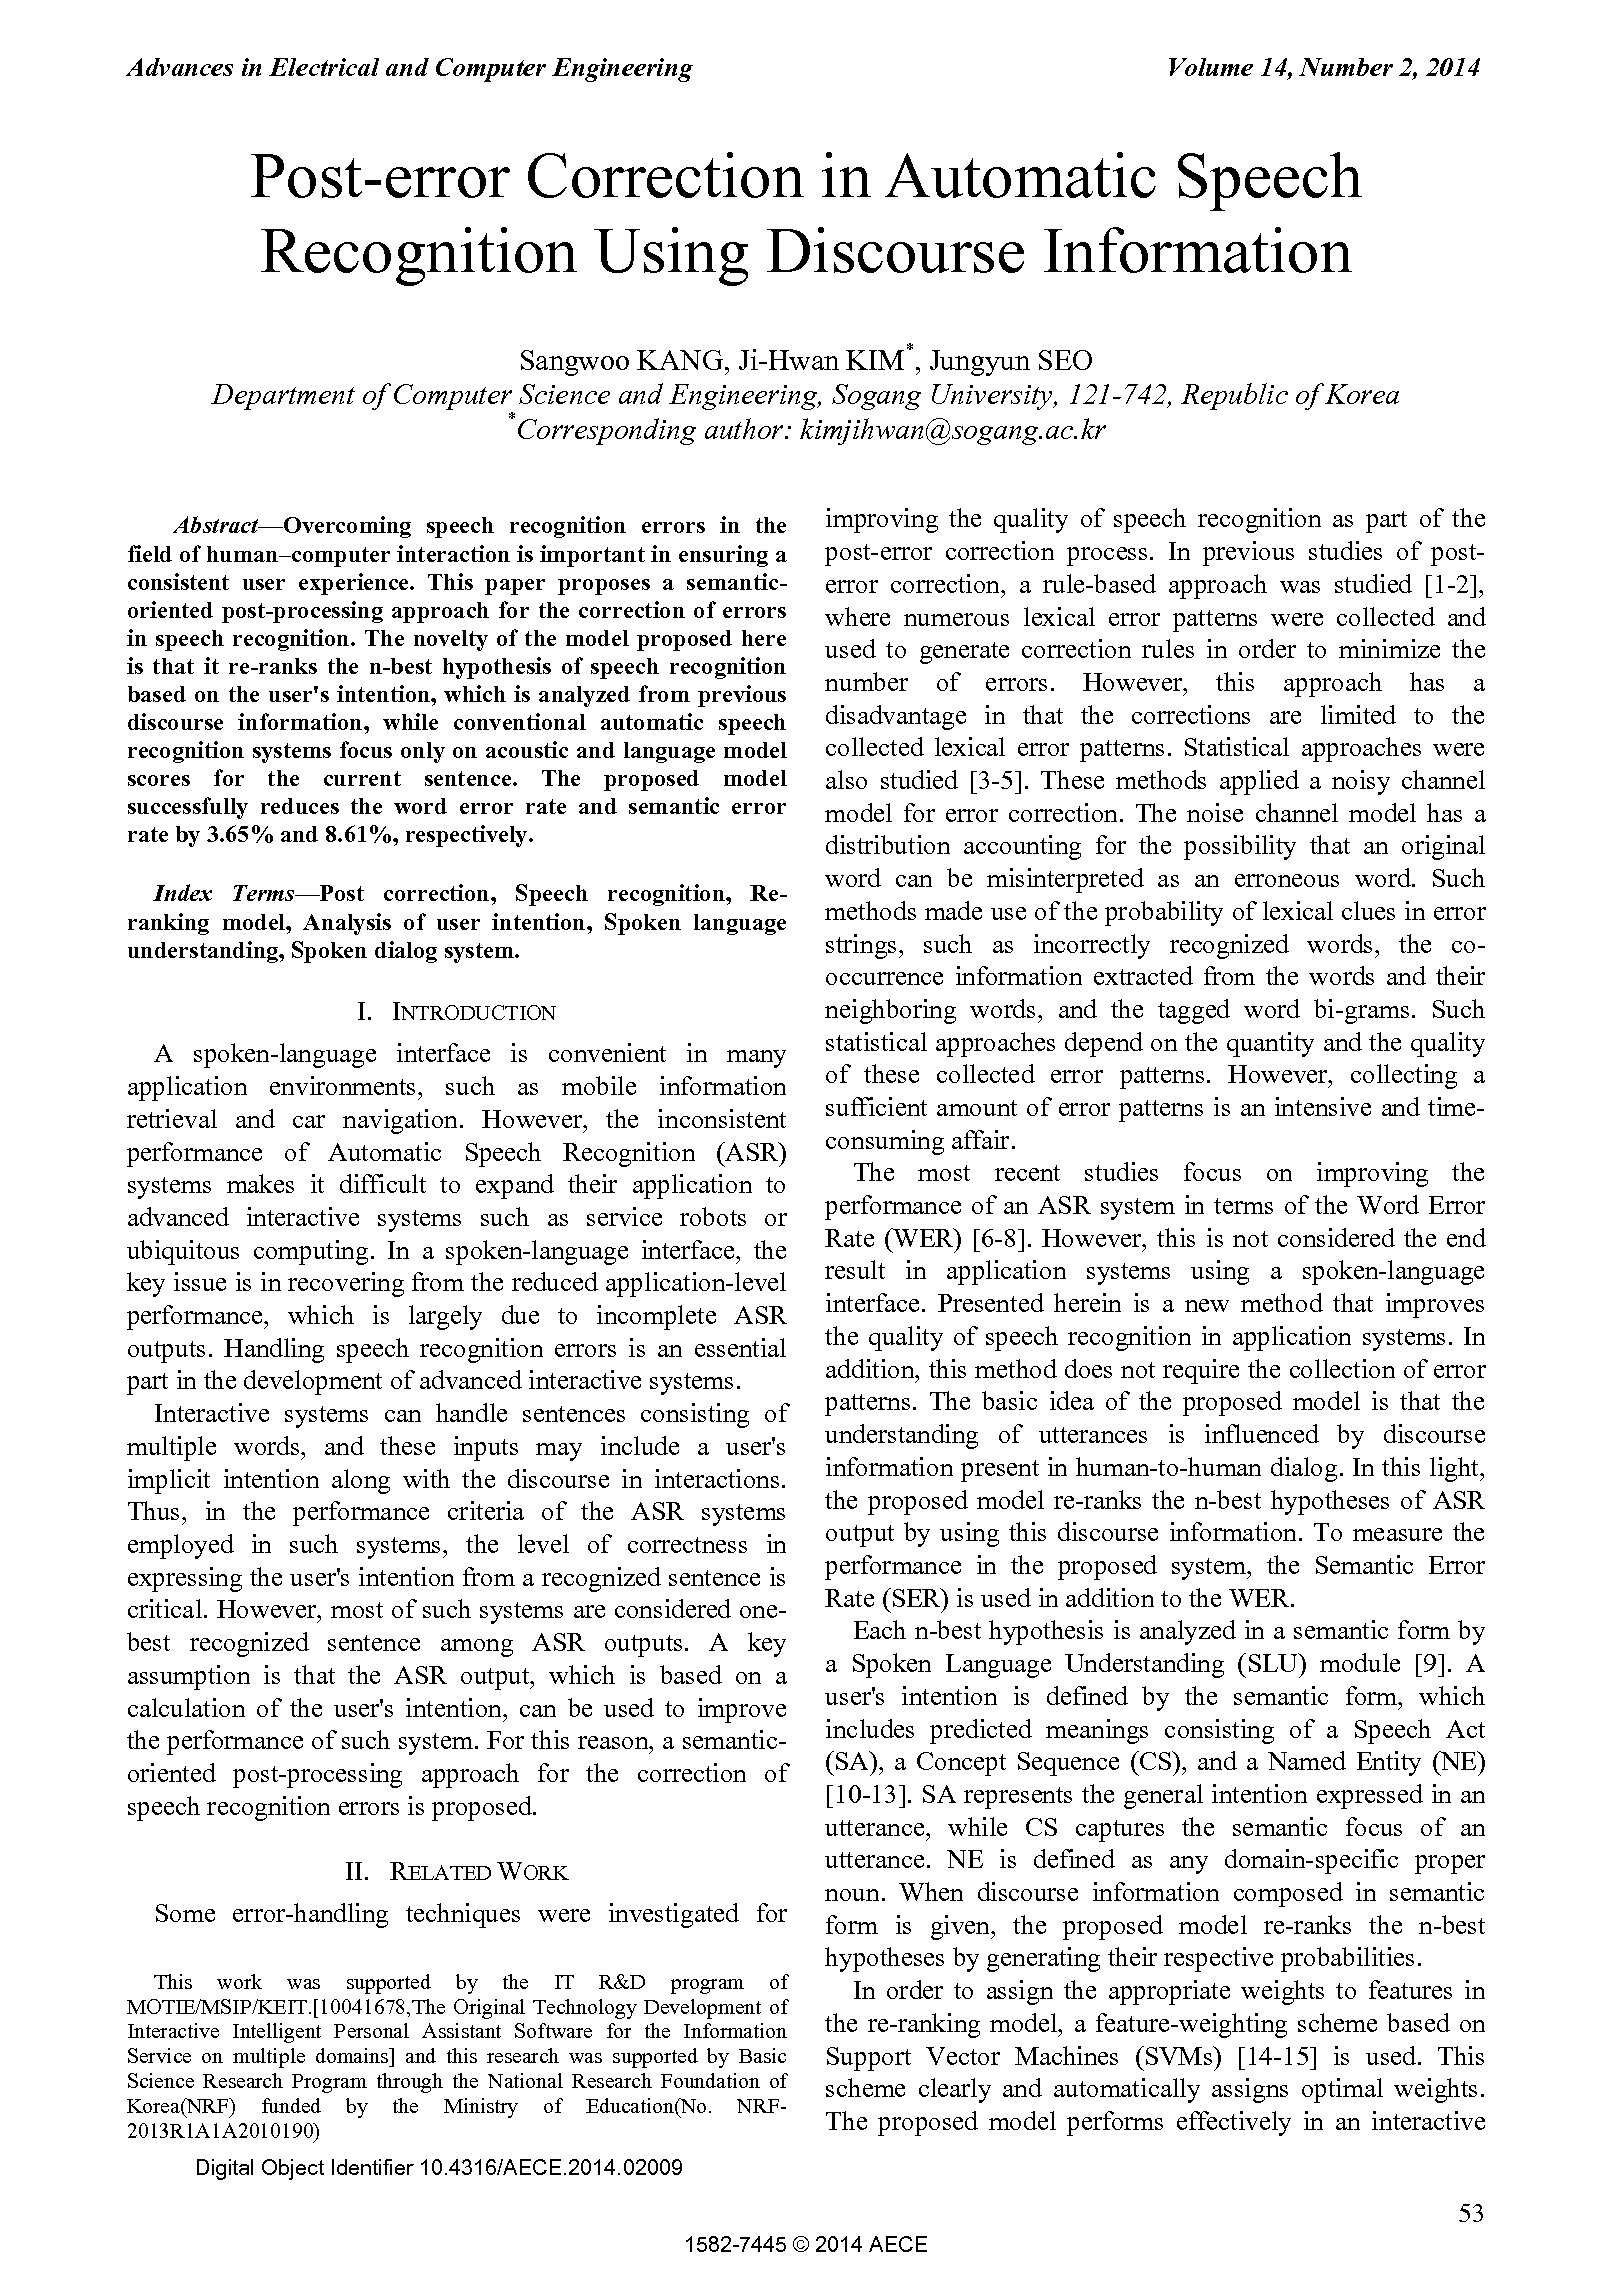 PDF Quickview for paper with DOI:10.4316/AECE.2014.02009